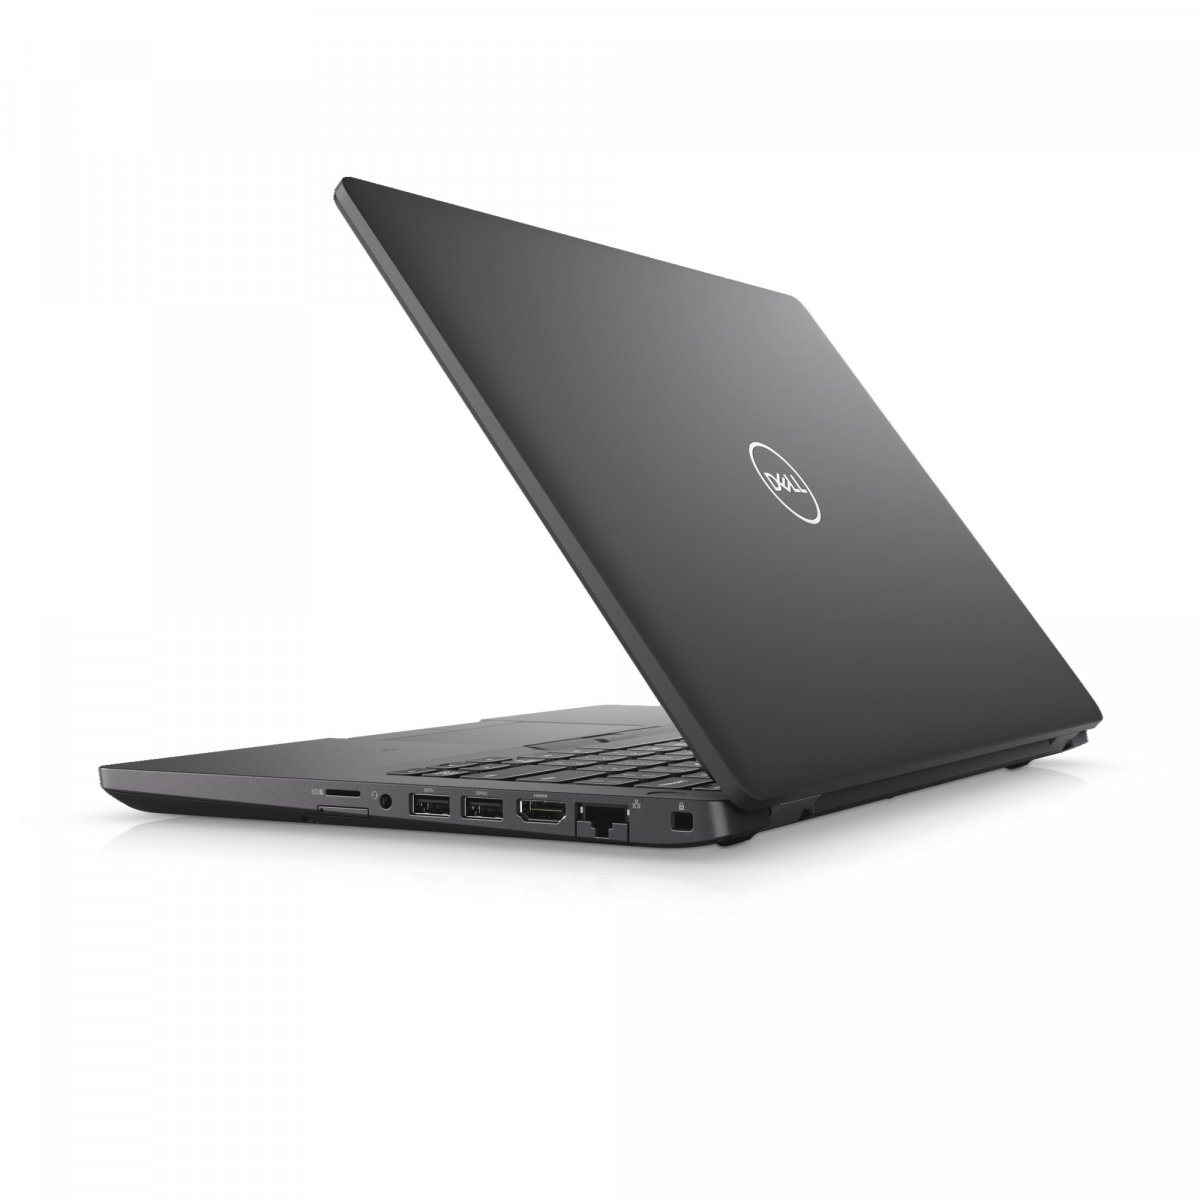 Laptop DELL Latitude 5400 14'' FHD i5-8265U 8GB 256GB SSD FPR SCR WIFI BT BK W10P 3YNBD